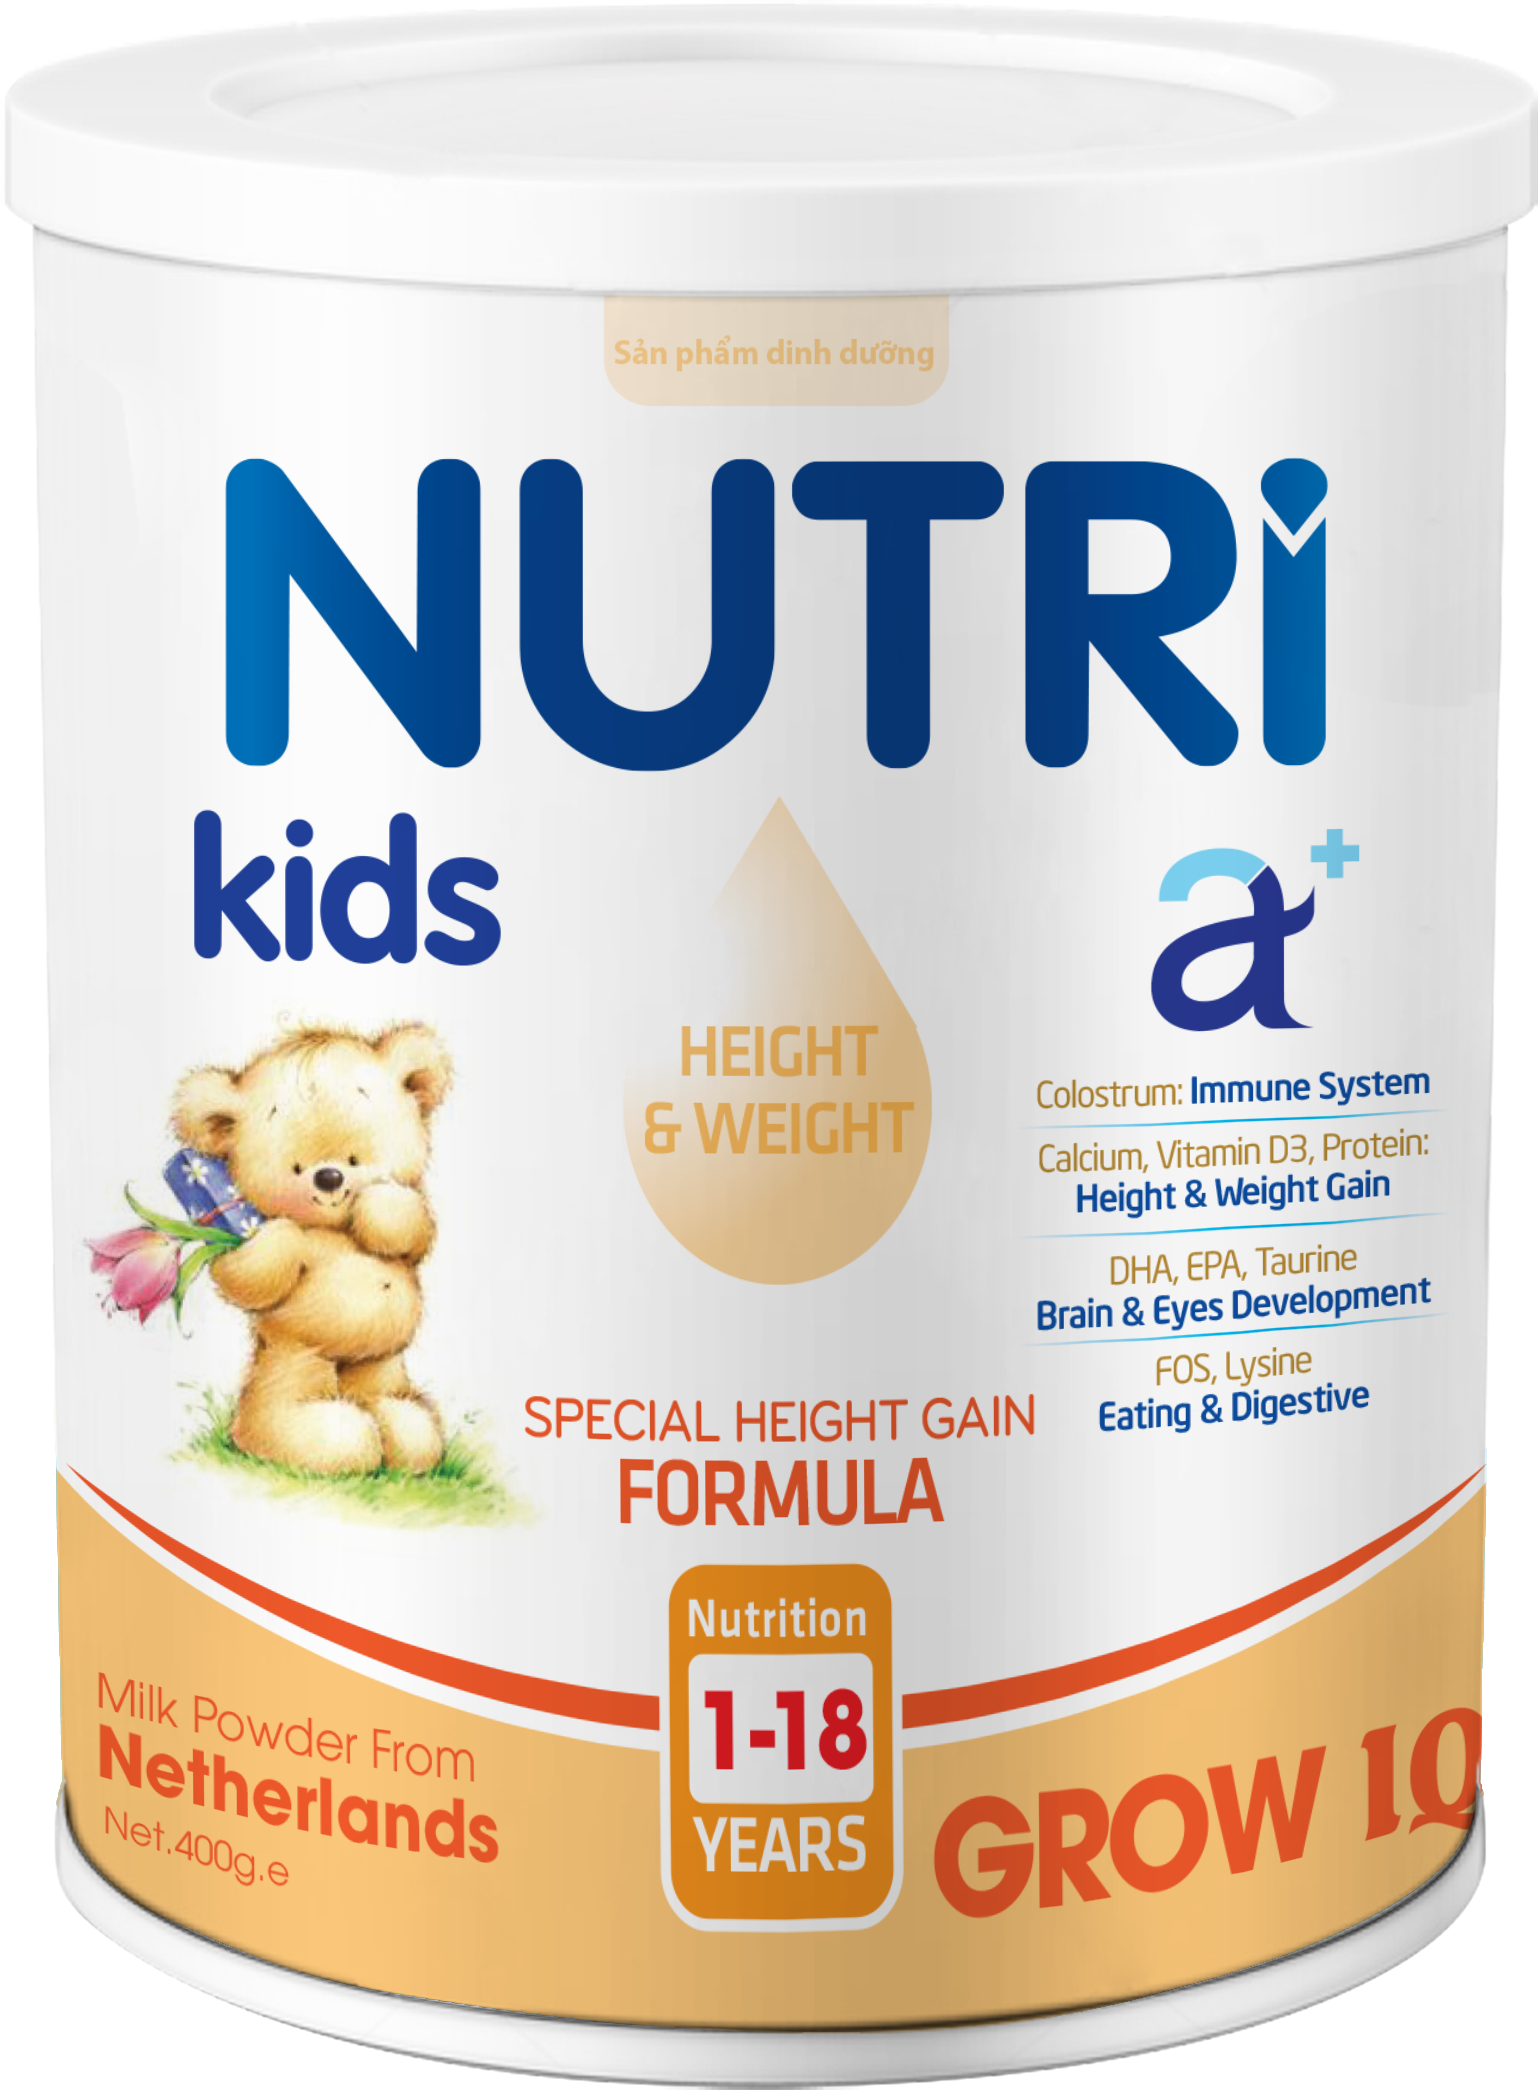 NUTRI KIDS A+ GROW IQ 400g